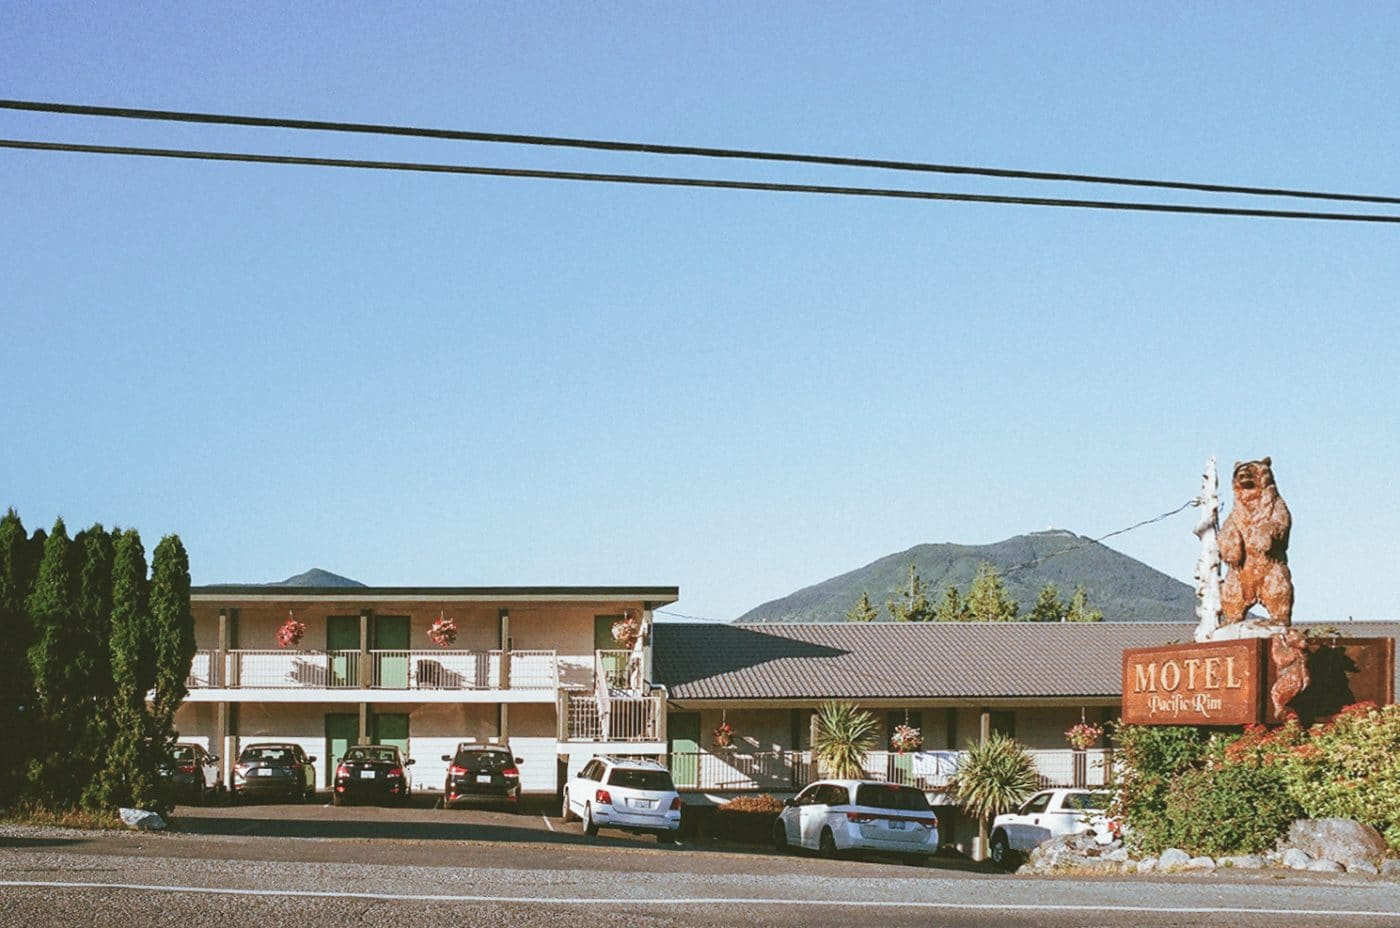 photo series on motels in Canada by Sacha Jennis